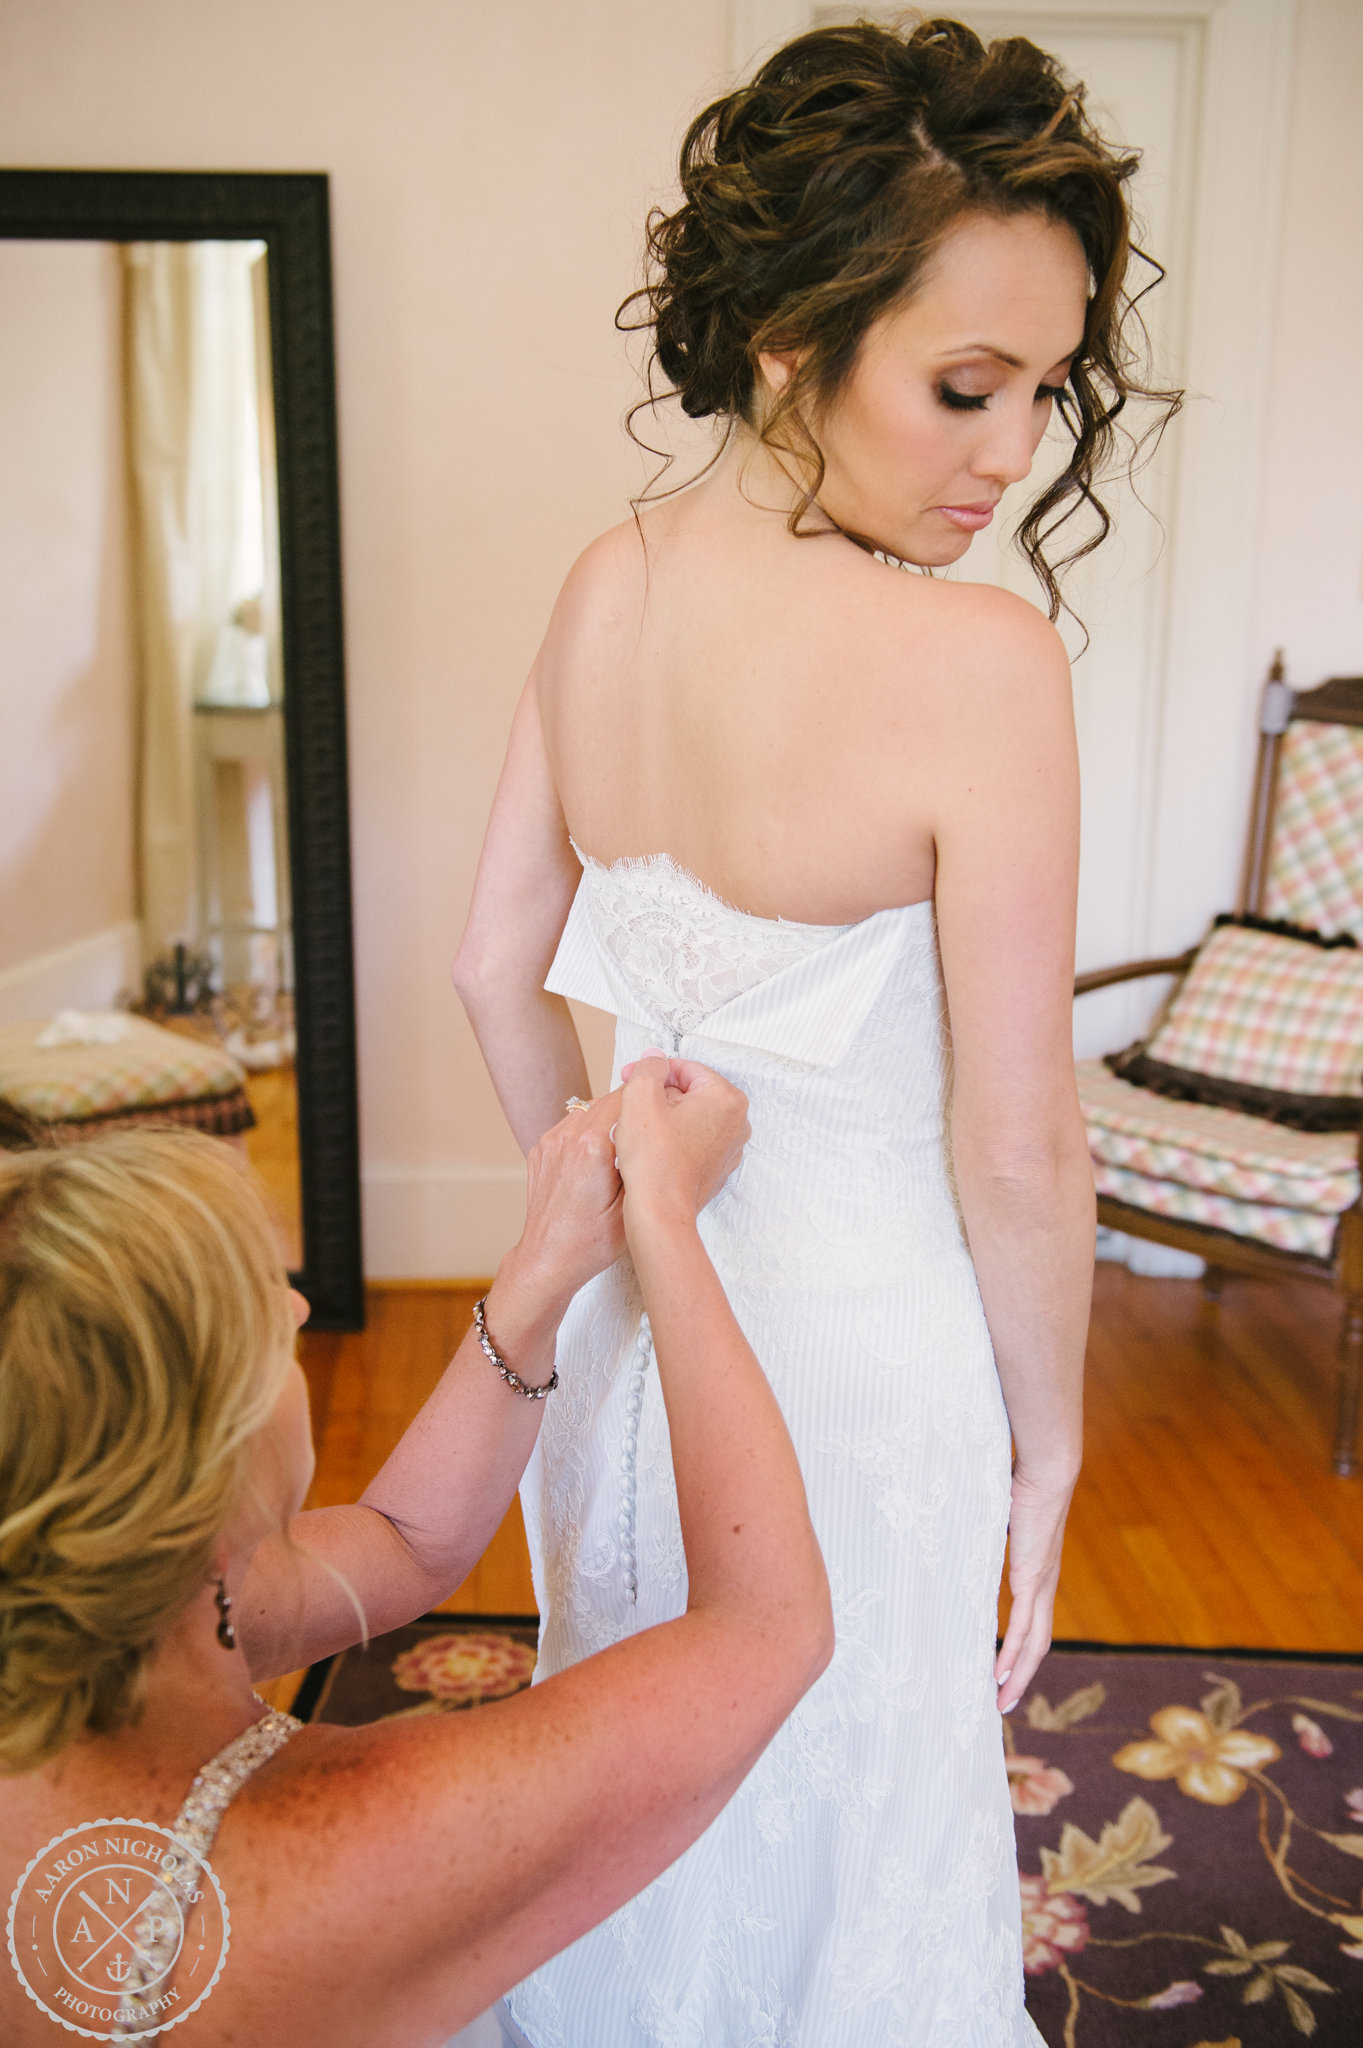 View More: http://aaronnicholasphoto.pass.us/charlineandanthony2014